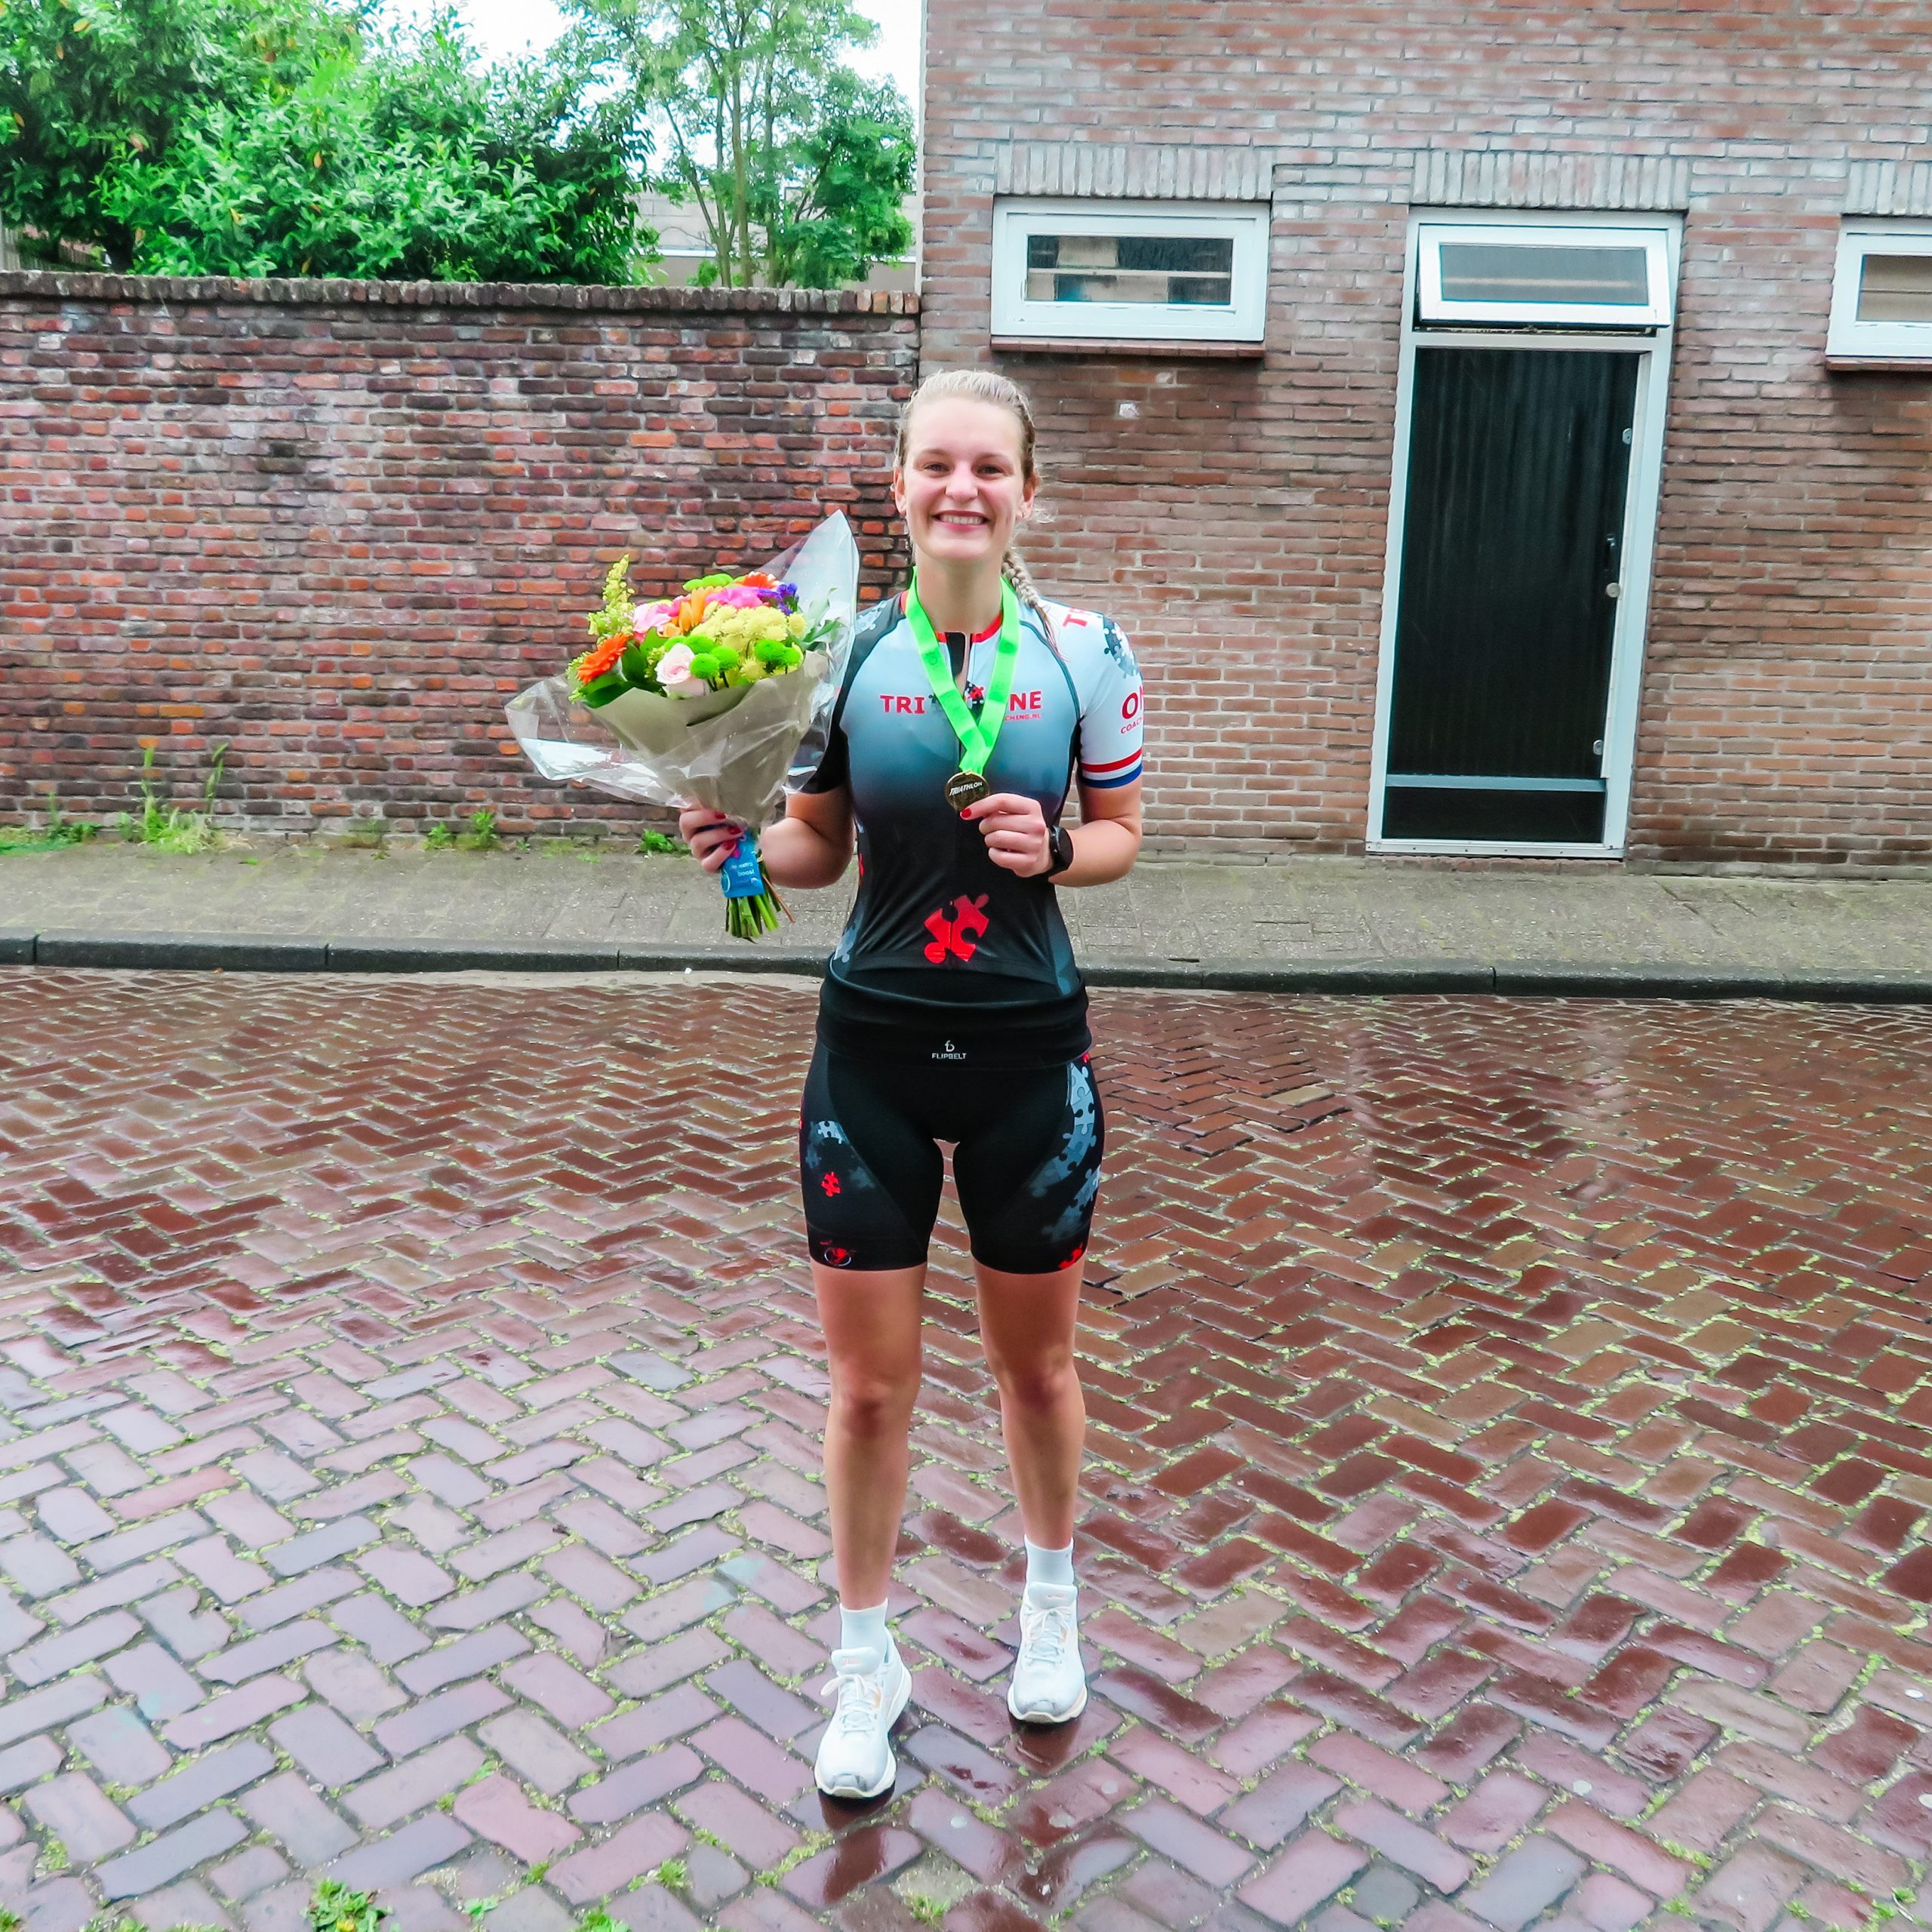 Solo corona triathlon raceverslag – road to revanche #4